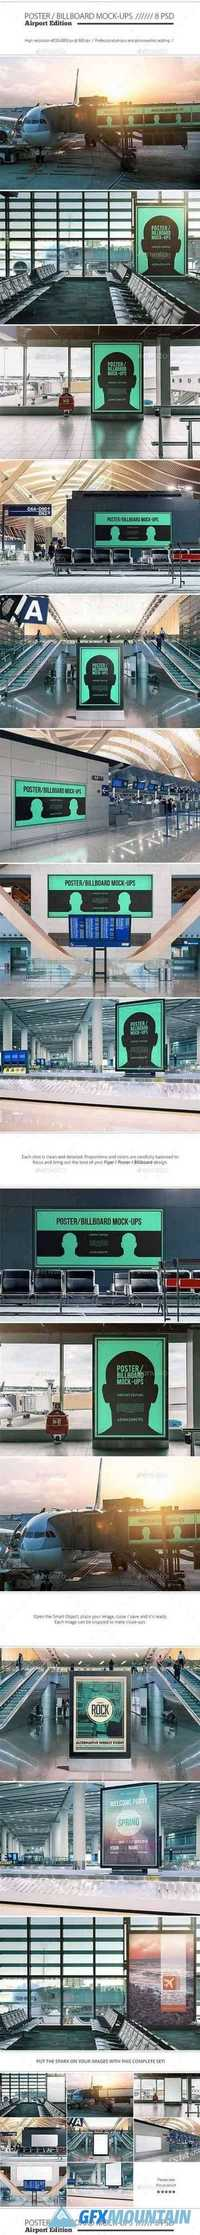 Poster Billboard Mock-ups - Airport Edition 12875743